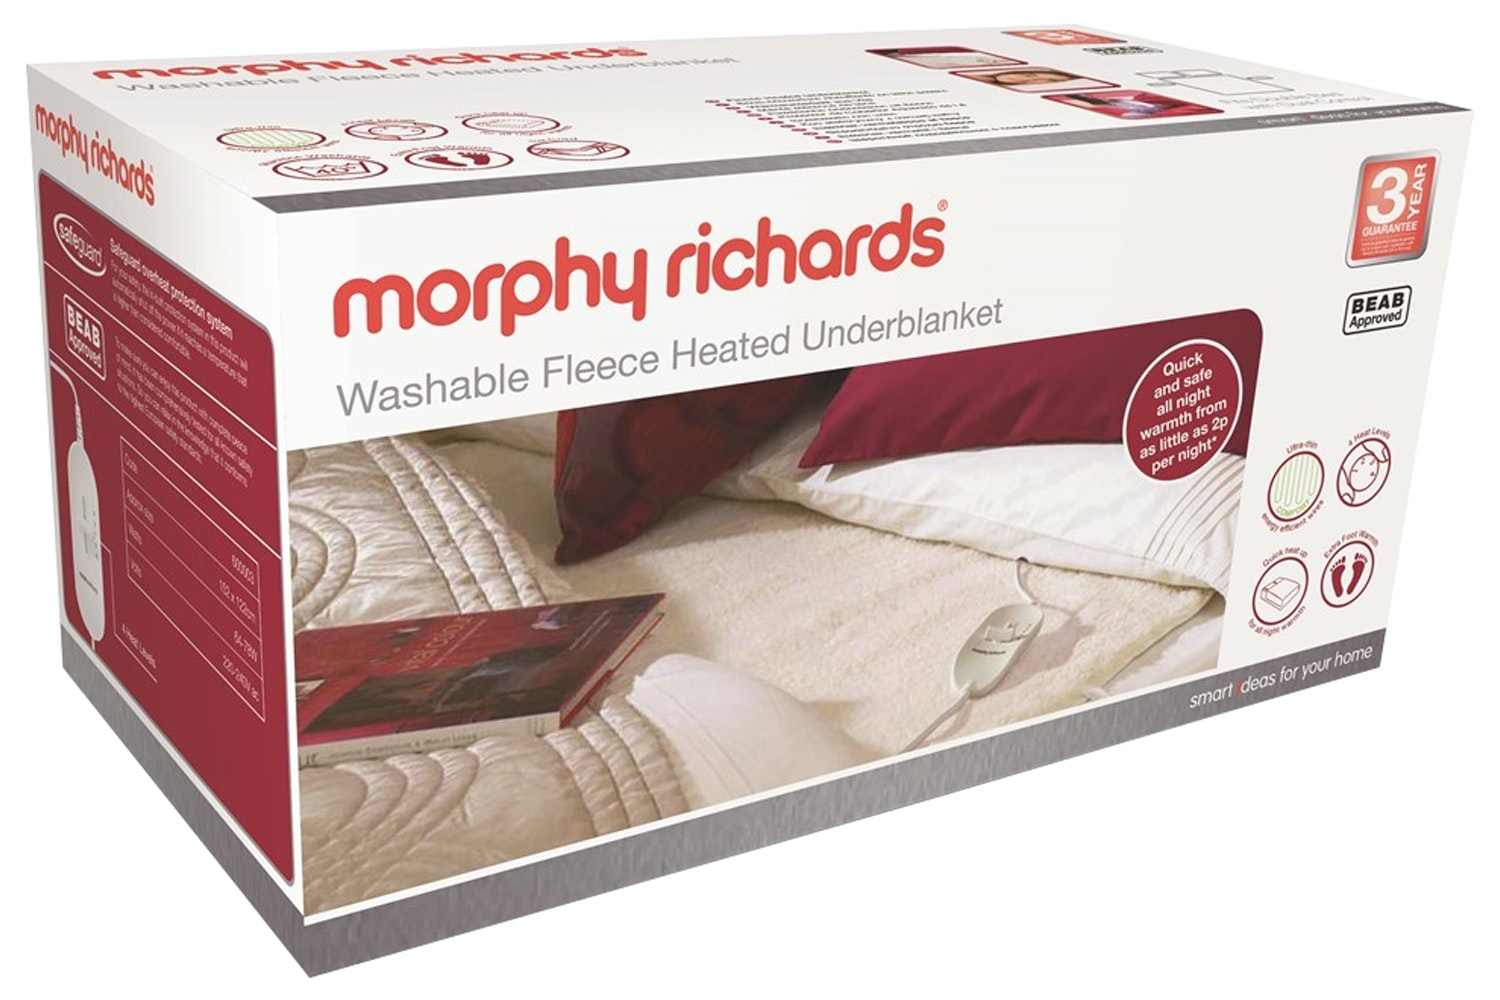 Morphy Richards Double Dual Washable Heated Underblanket | 600013